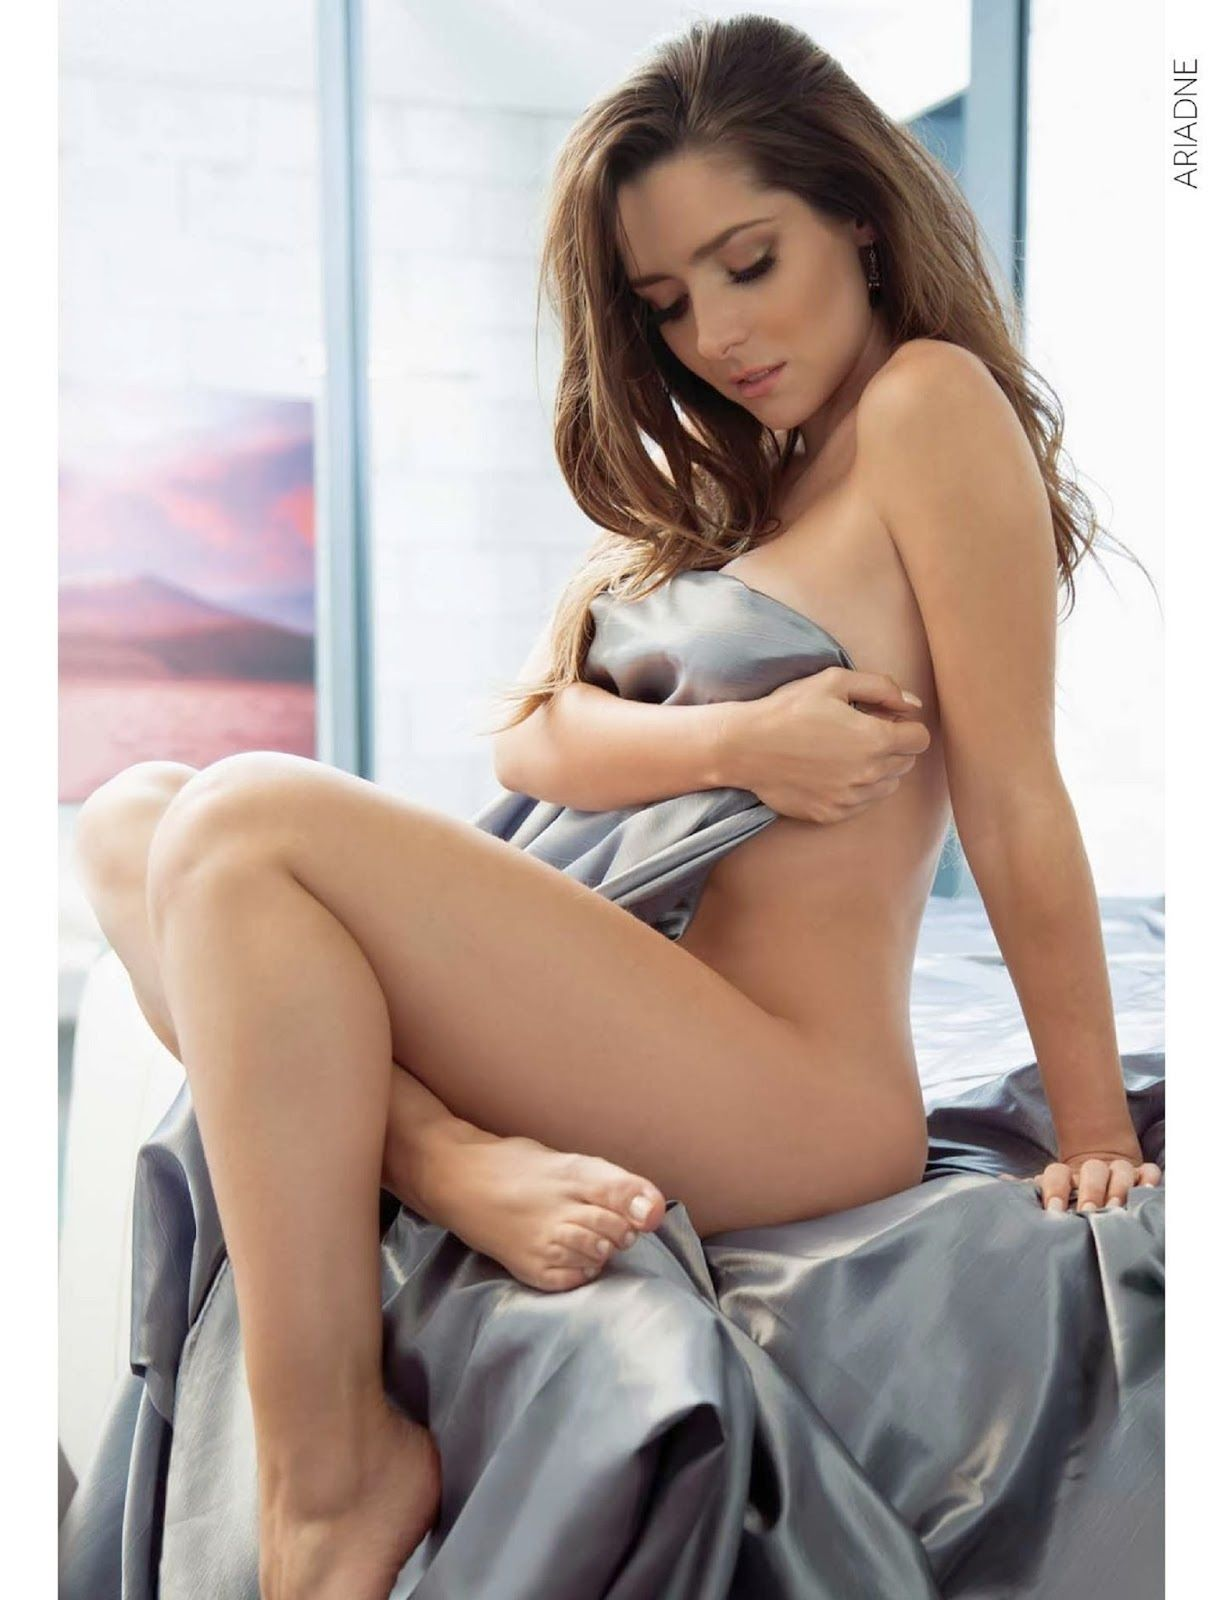 naked (83 photos), Is a cute Celebrites pic